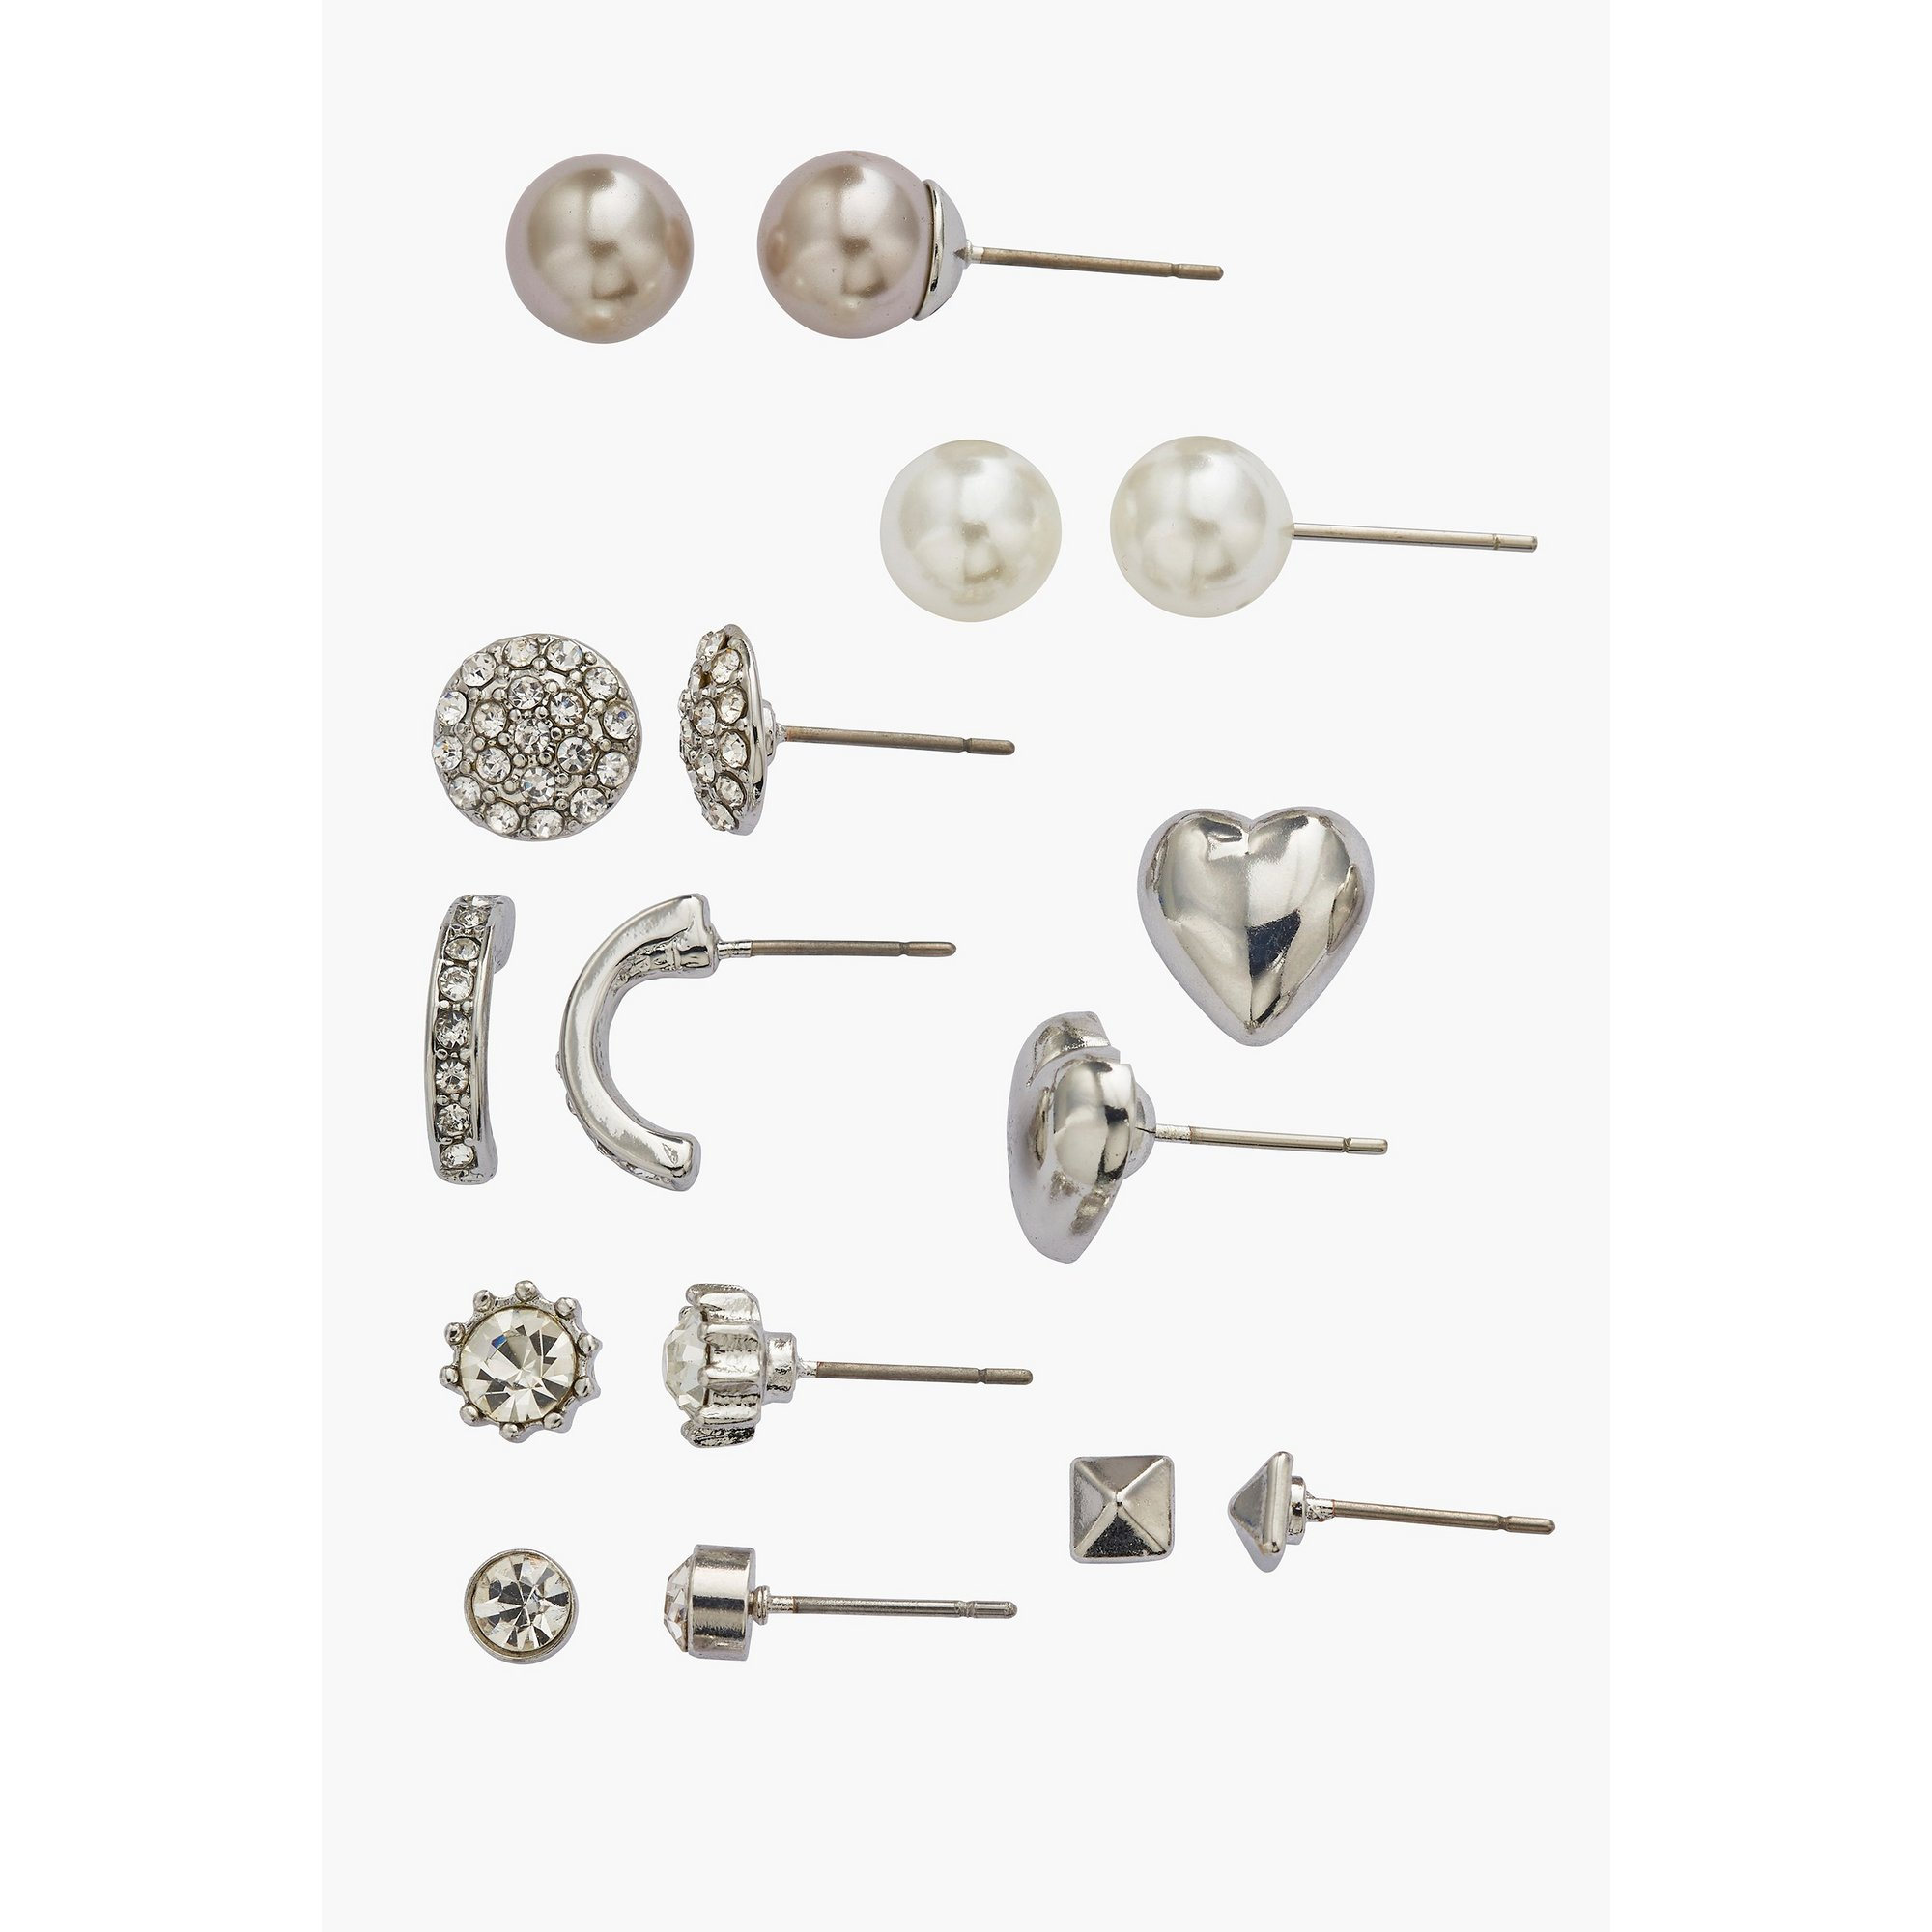 Image of Buckley London 8-Piece Rhodium Earring Set